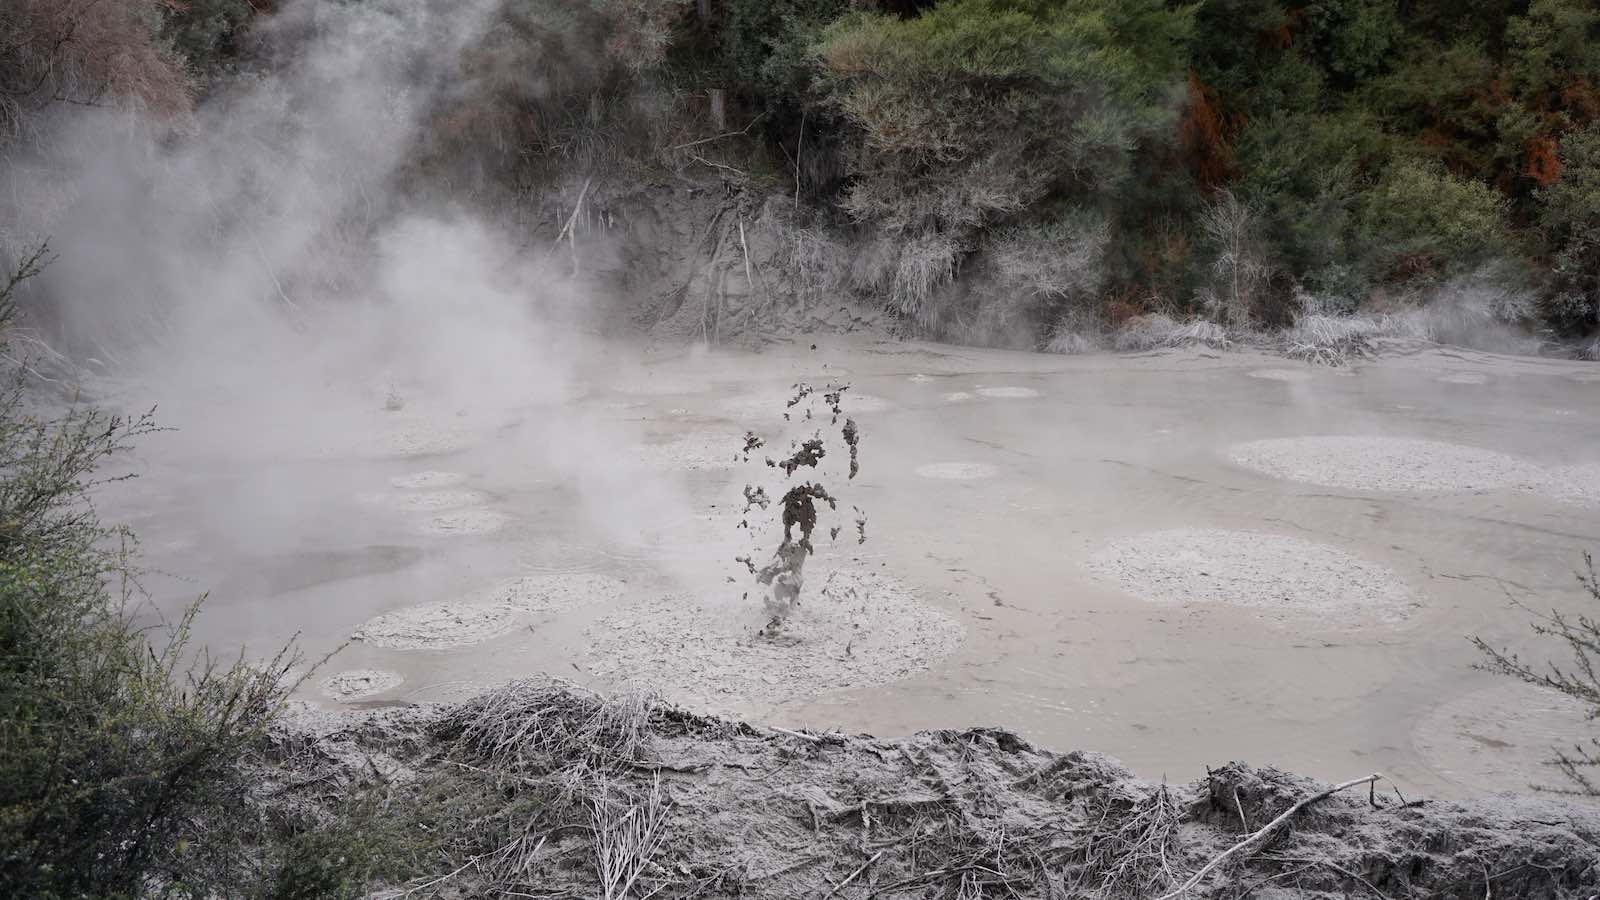 Earth's so hot, making that mud pop